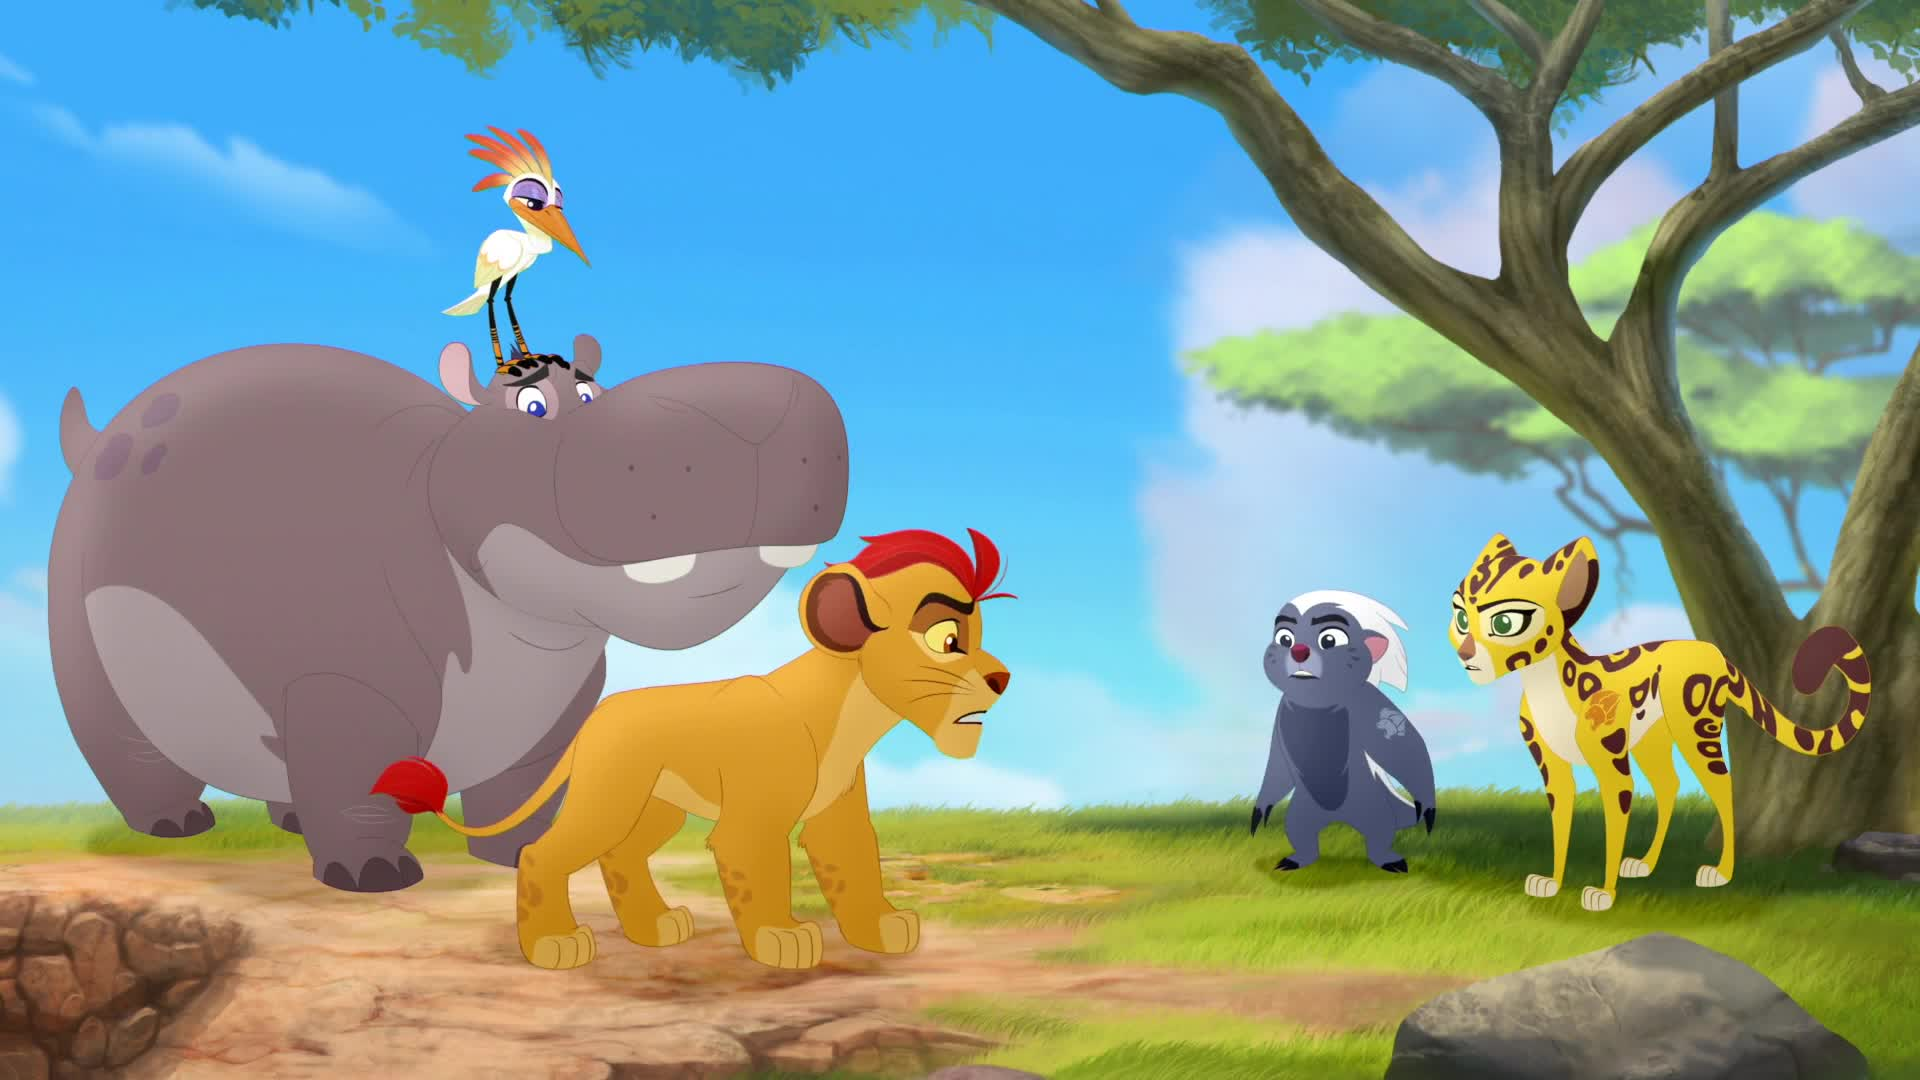 the lion king summary essay This essay explores the characters and plots of shakespeare's hamlet and the disney movie, the lion king and highlights the differences and  hamlet vs the lion king.